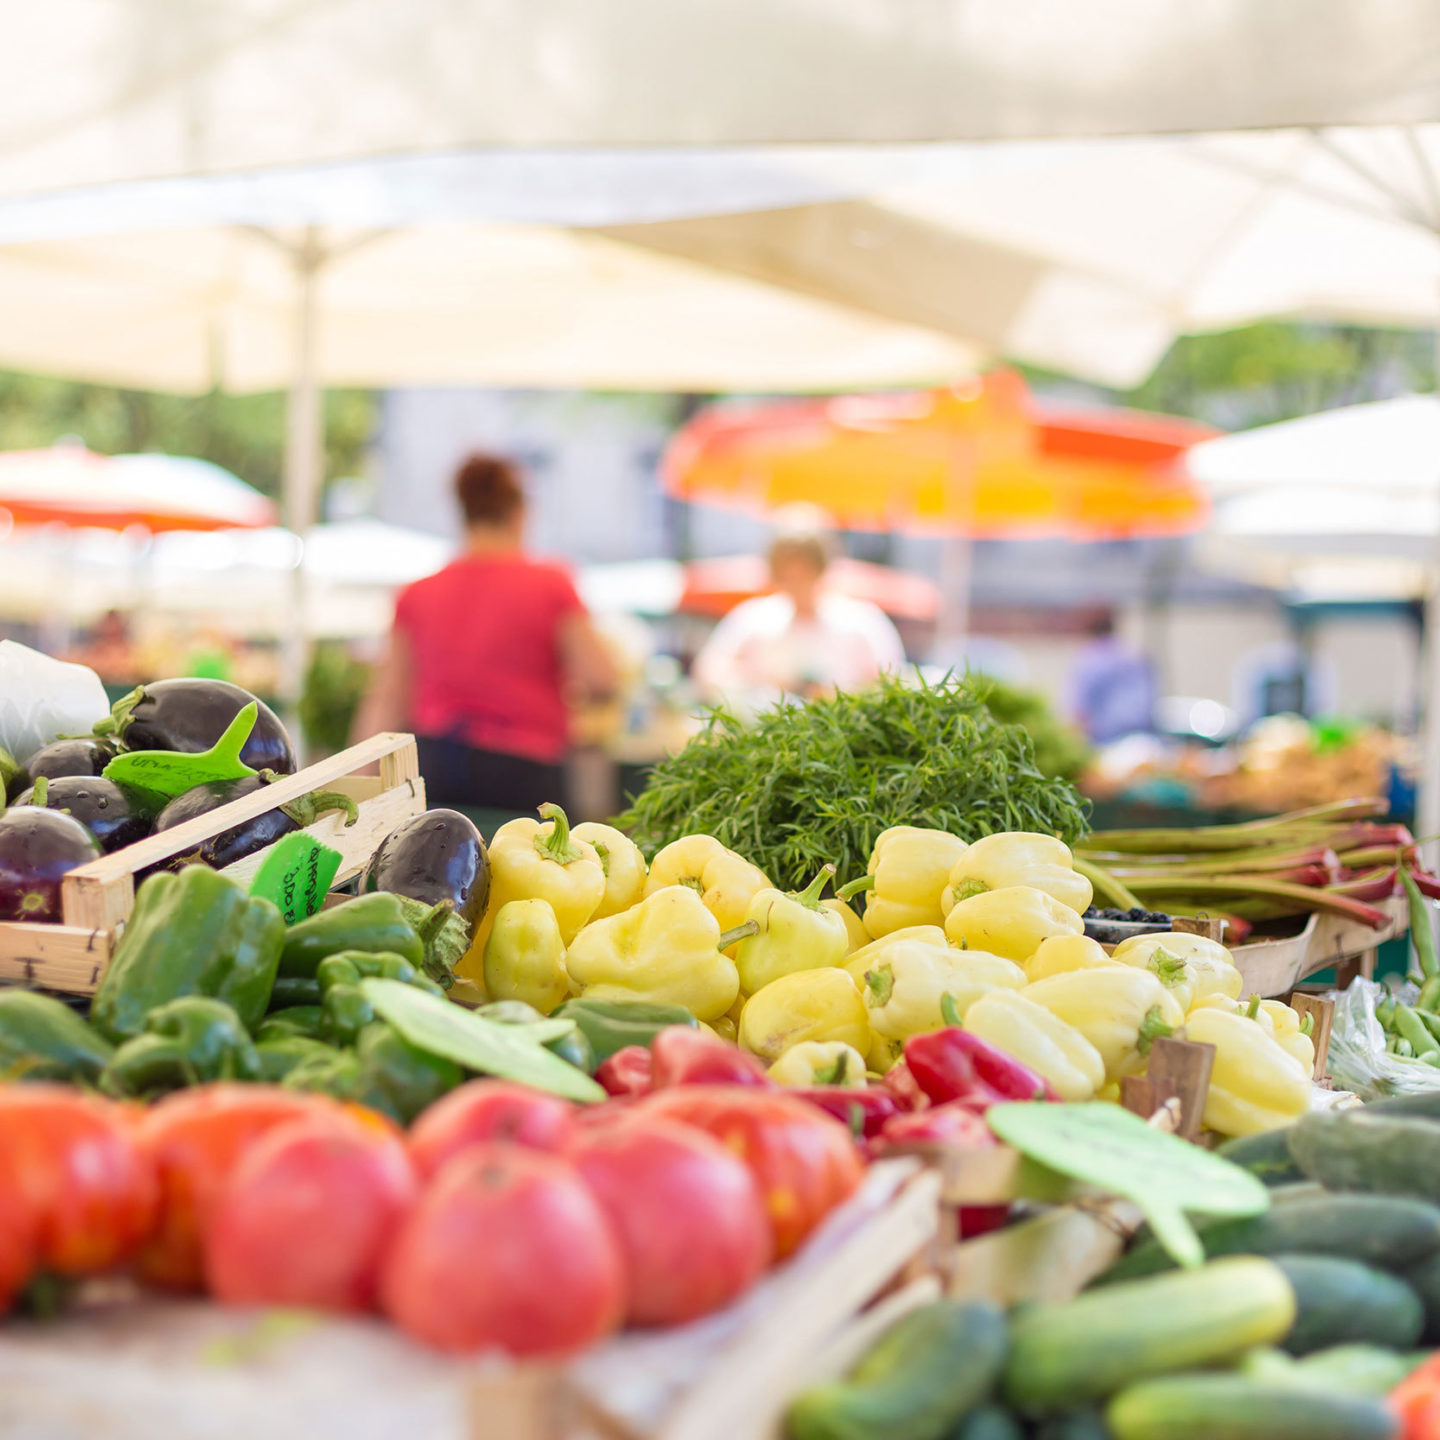 Farmers market stall with variety of organic vegetable